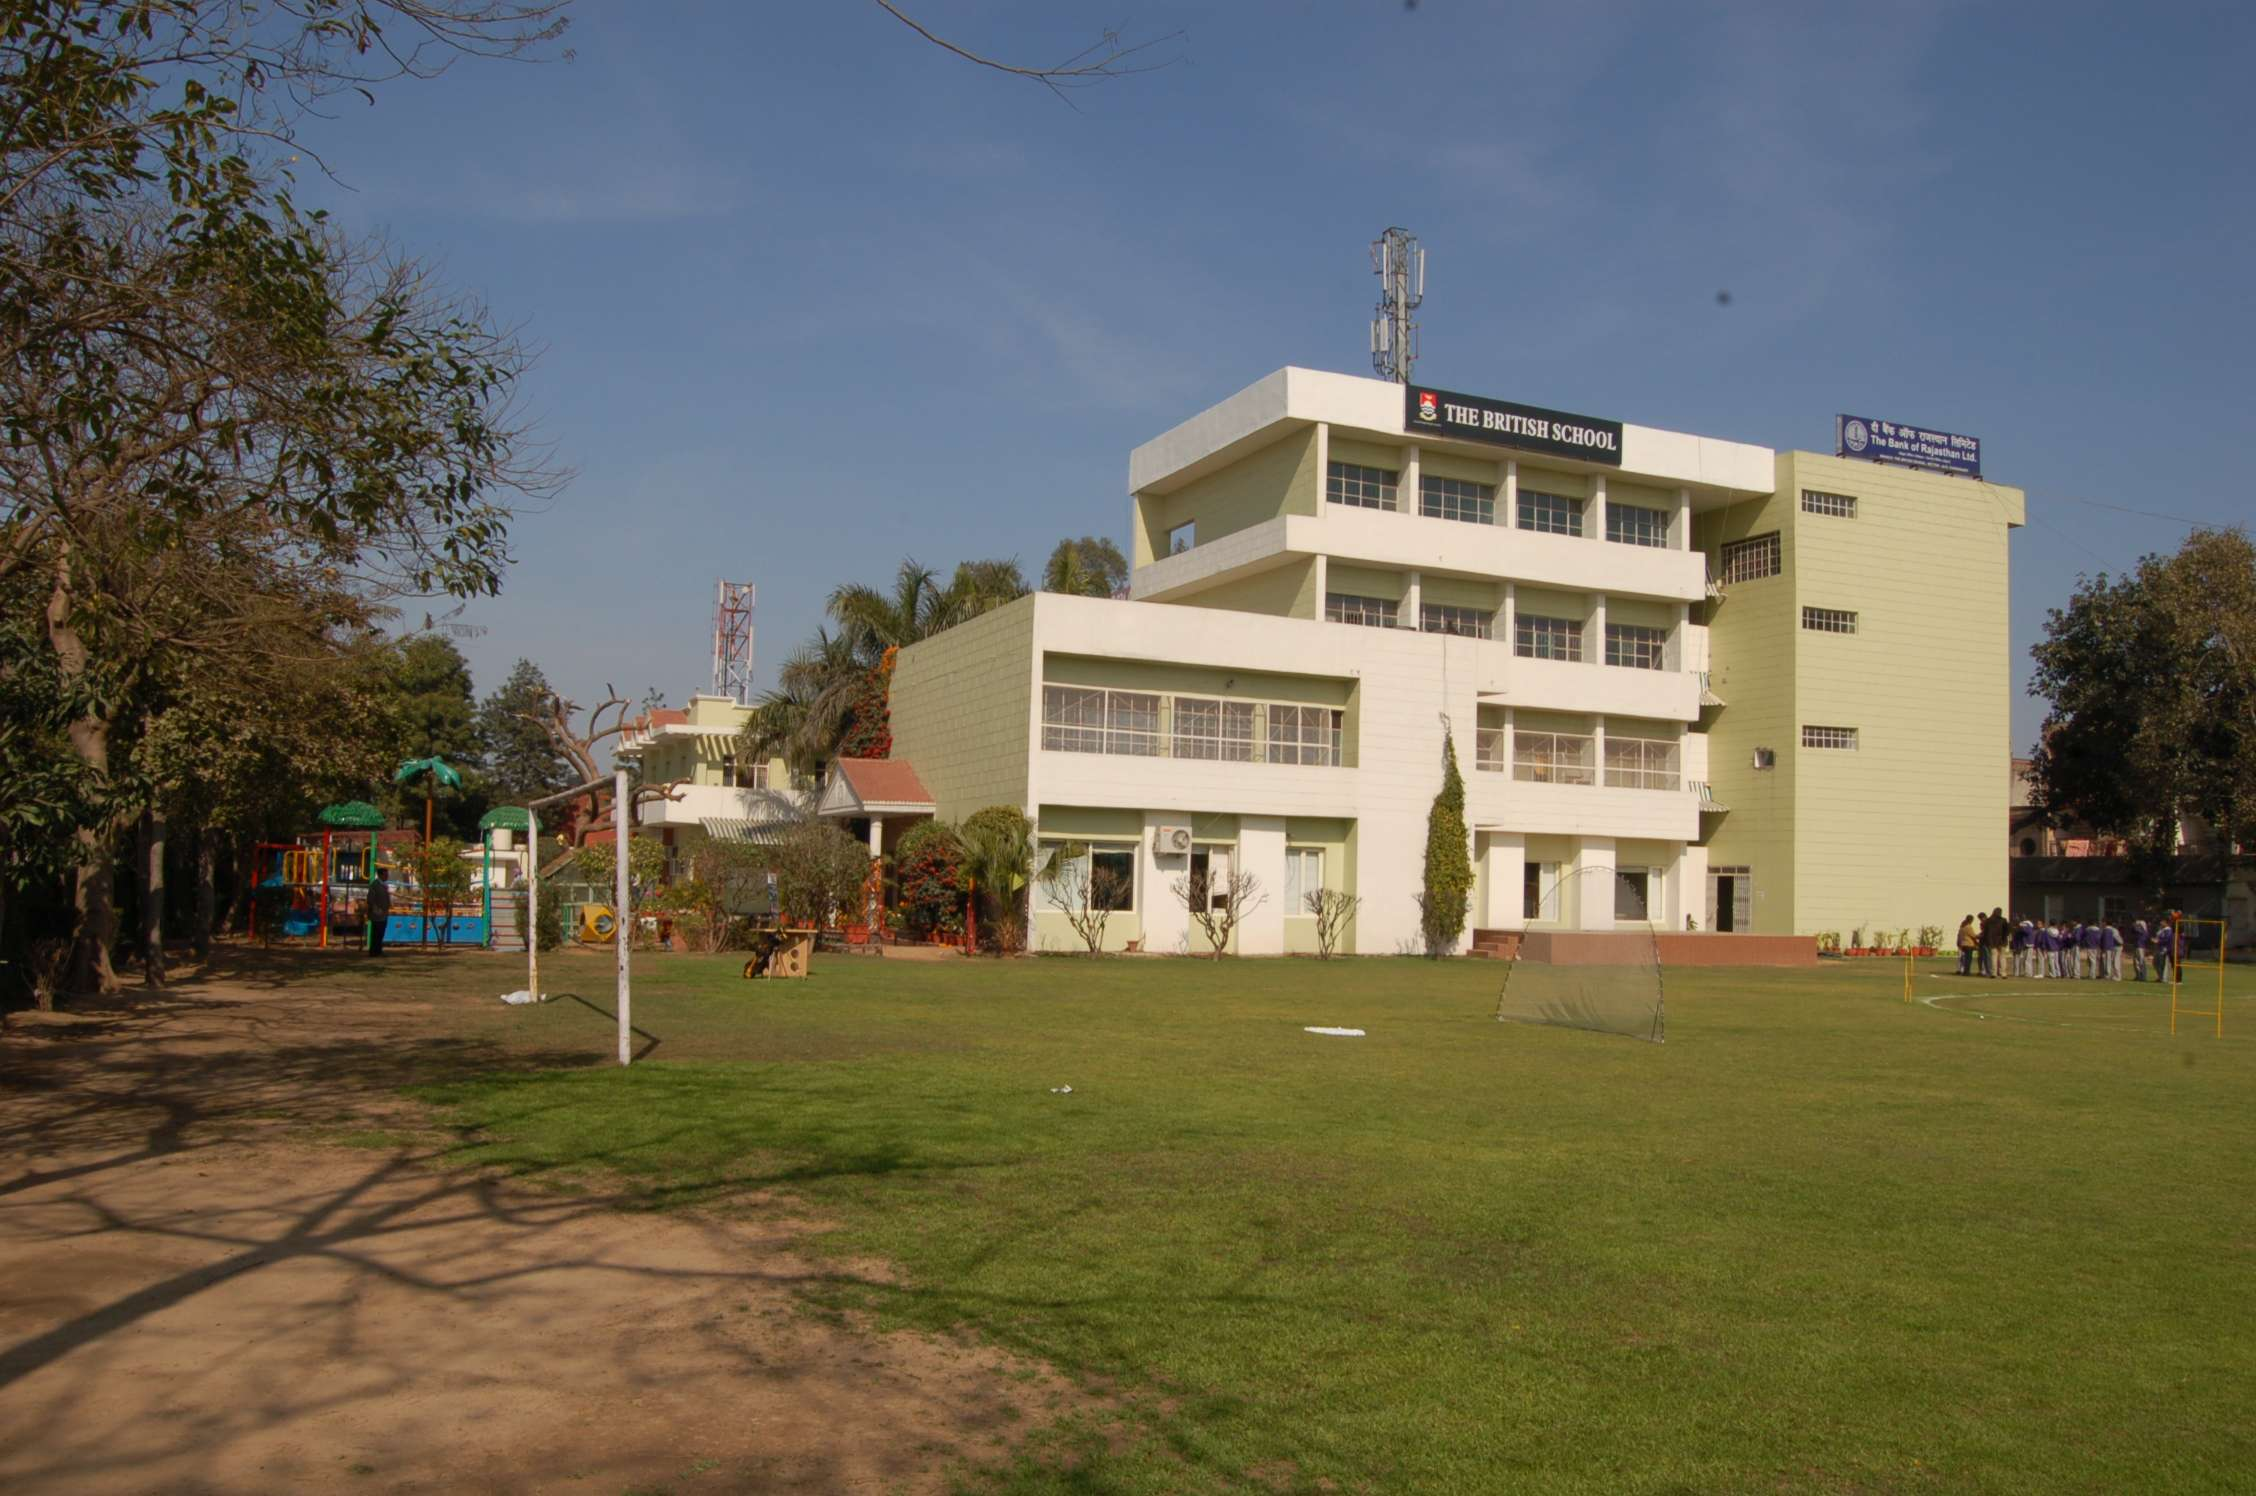 The British School Sector 44B Sector 44 B Chandigarh 2630071